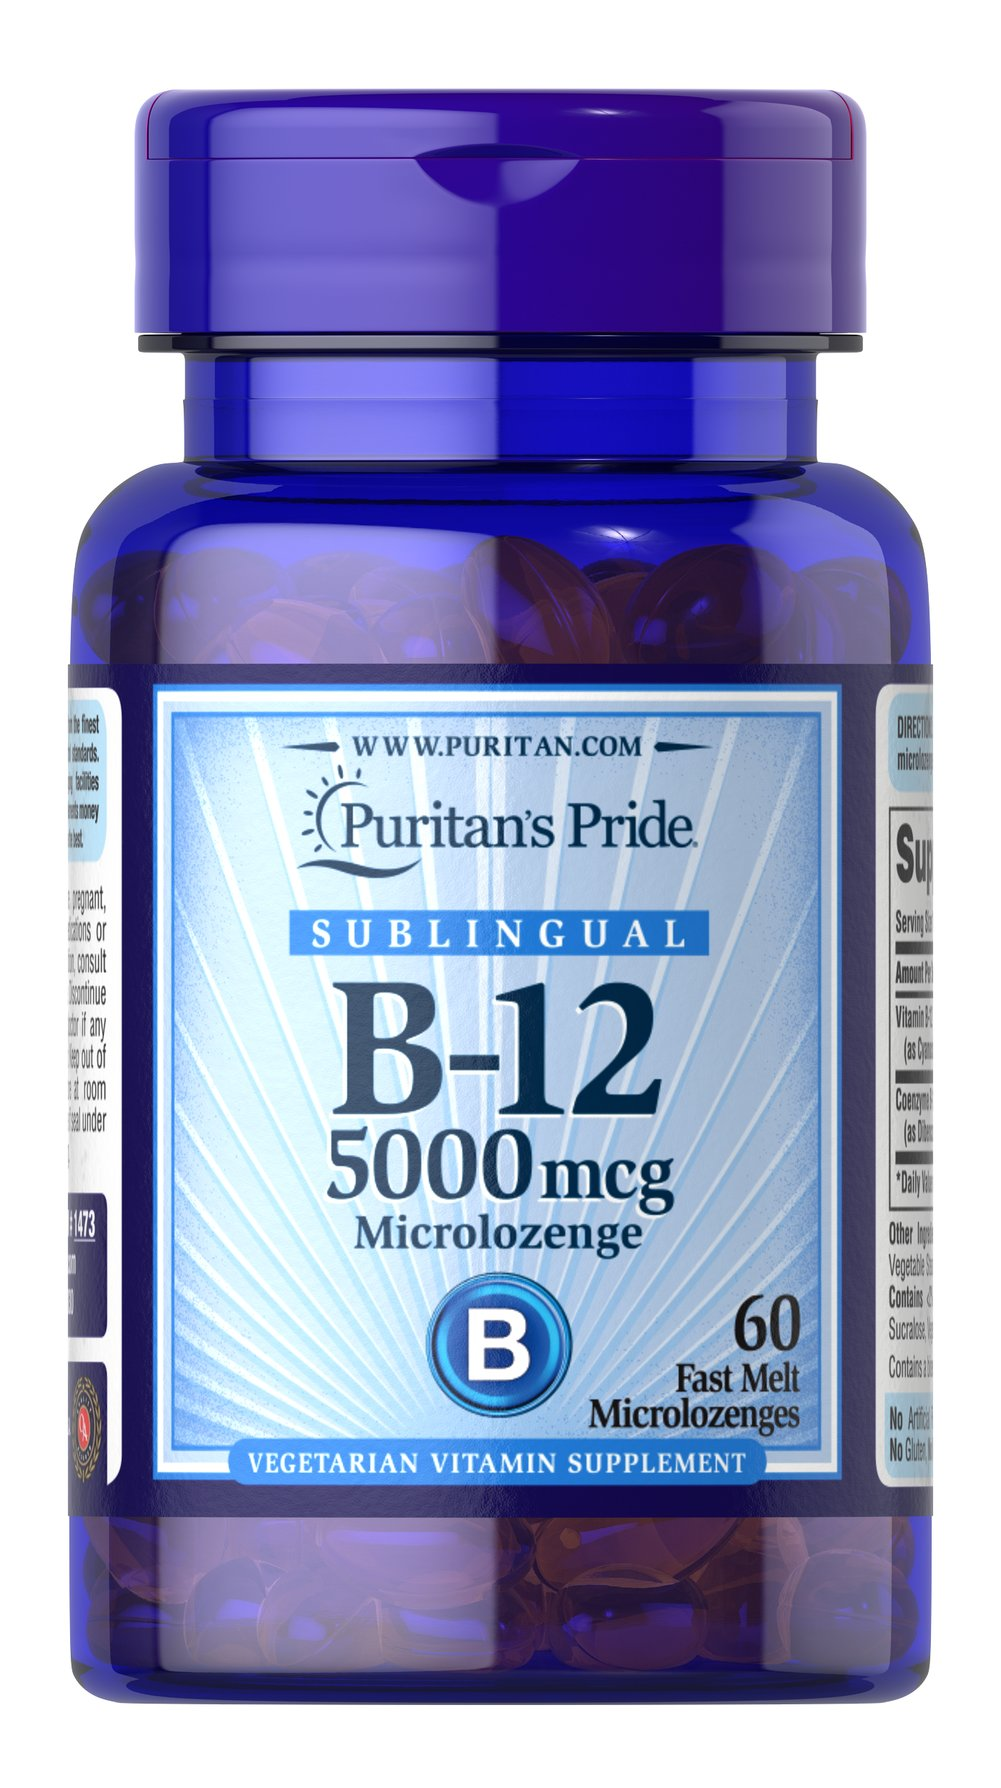 Vitamin B-12 5000 mcg Sublingual  60 Microlozenges 5000 mcg $22.99